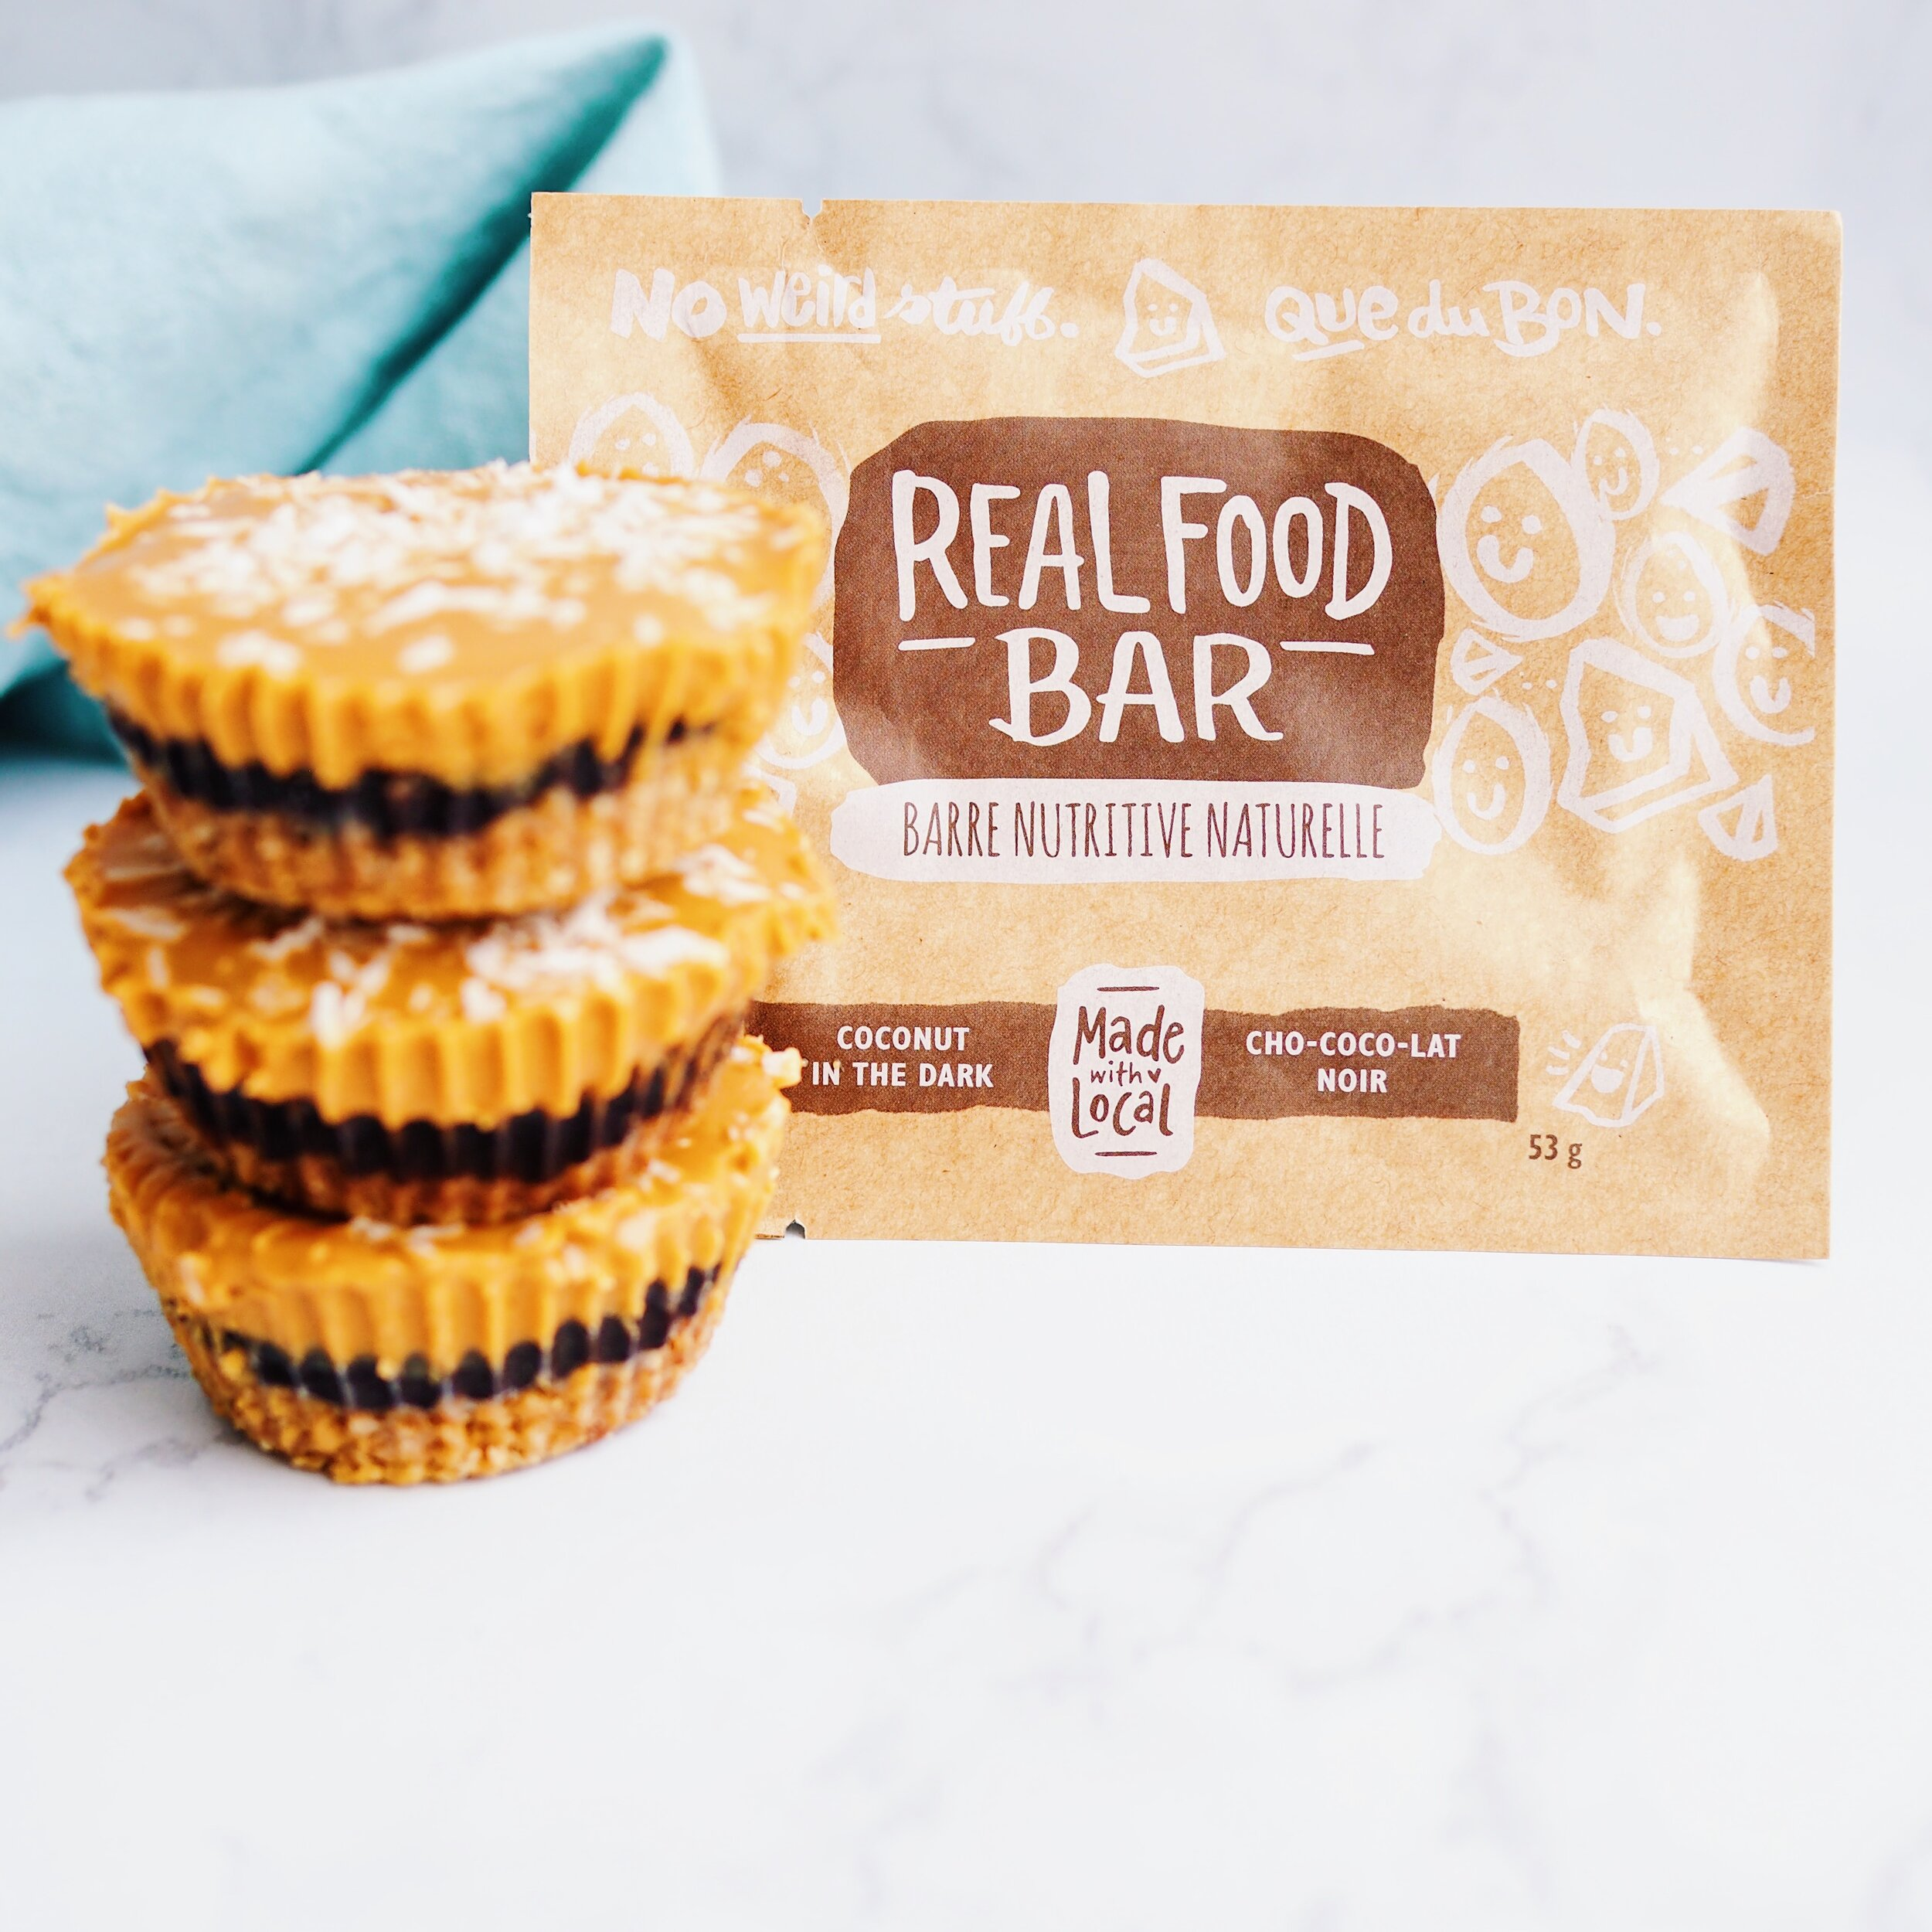 Chocolate Peanut Butter Oatmeal Cups Made with Local